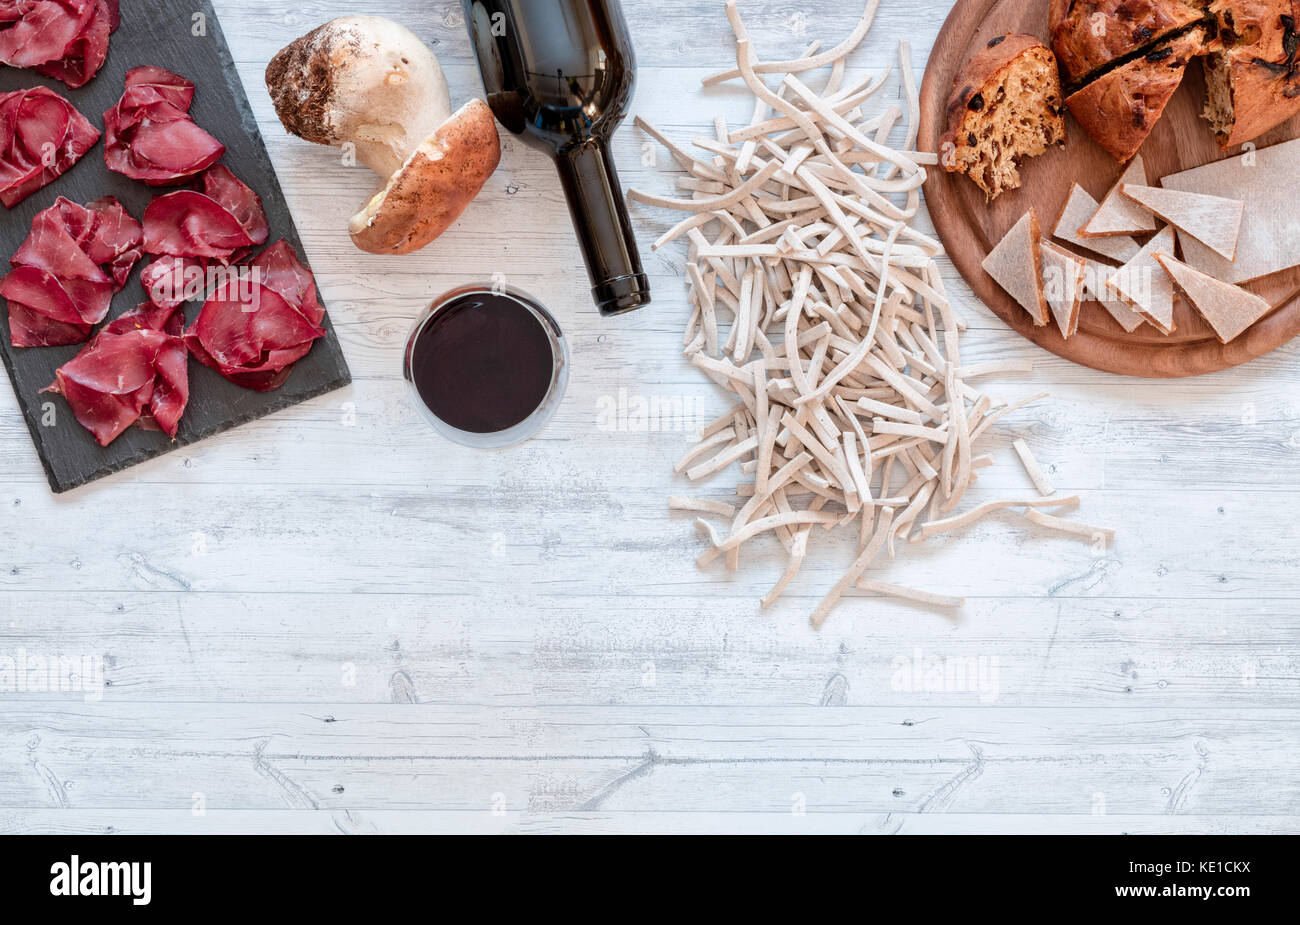 Bresaola IGP accompanied with red wine, Pizzoccheri, mushrooms and Besciola, local food of Valtellina, Lombardy, - Stock Image